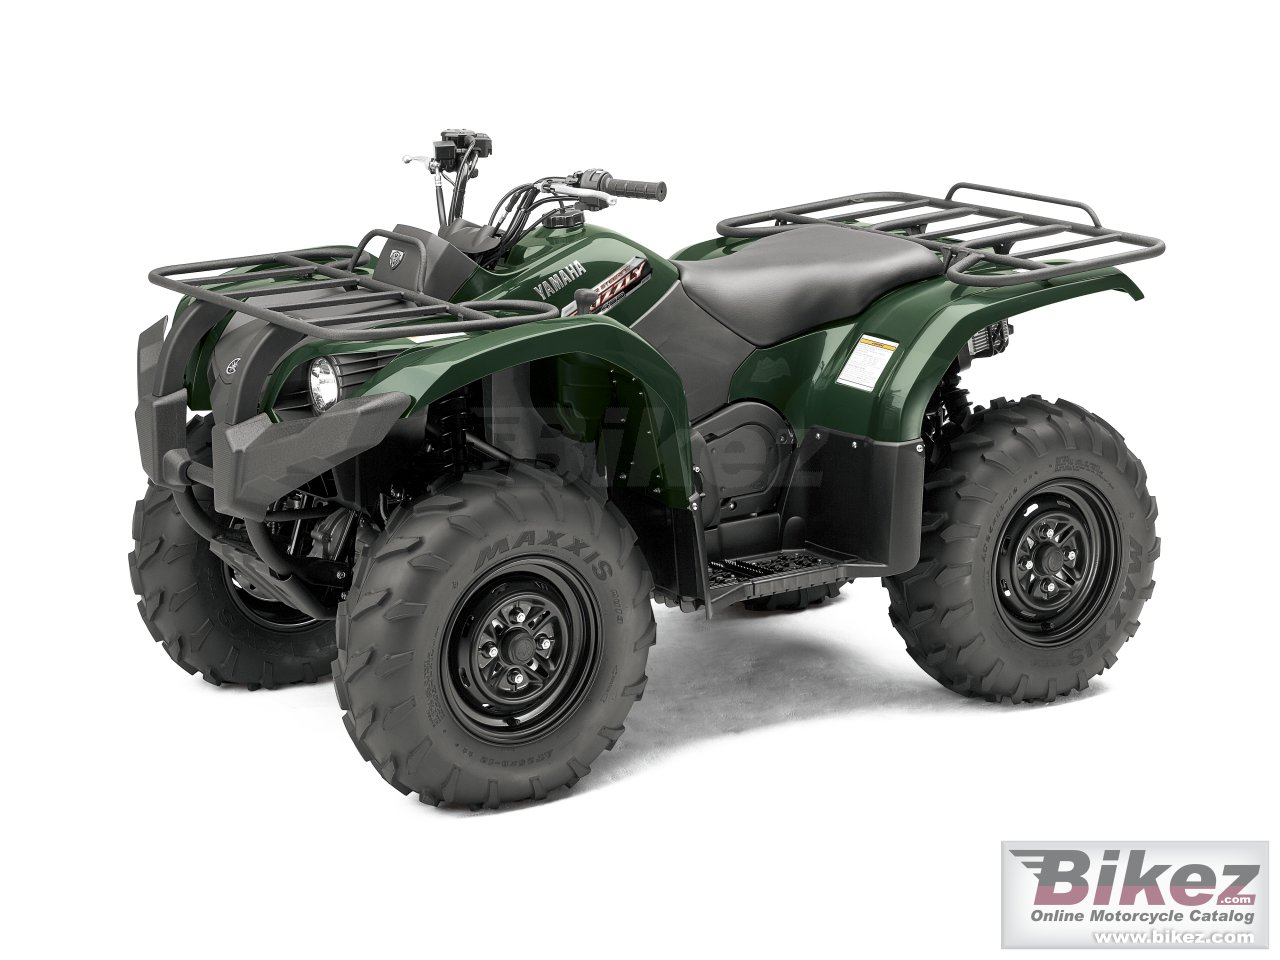 Big Yamaha grizzly 450 auto 4x4 eps picture and wallpaper from Bikez.com